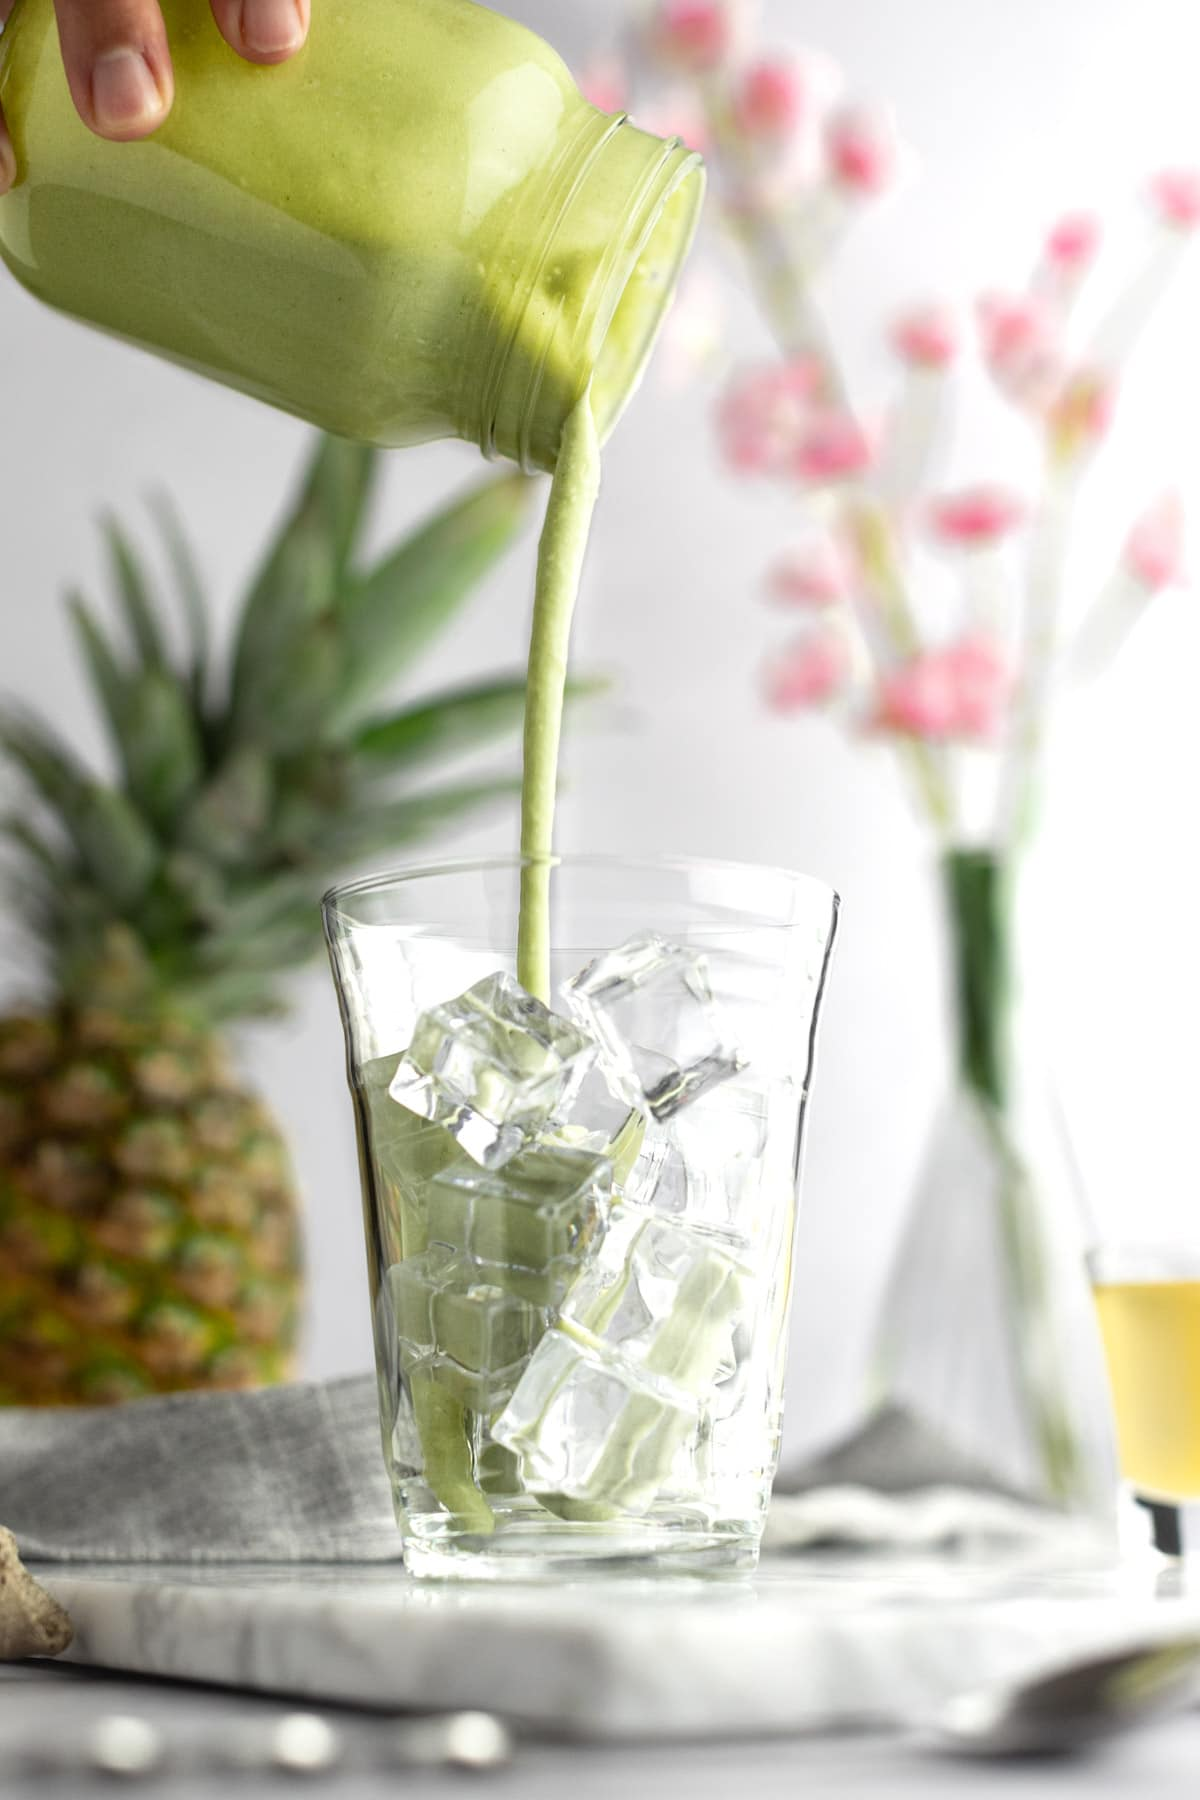 A hand pouring the matcha drink into a glass filled with ice cubes, with a pineapple in the background.